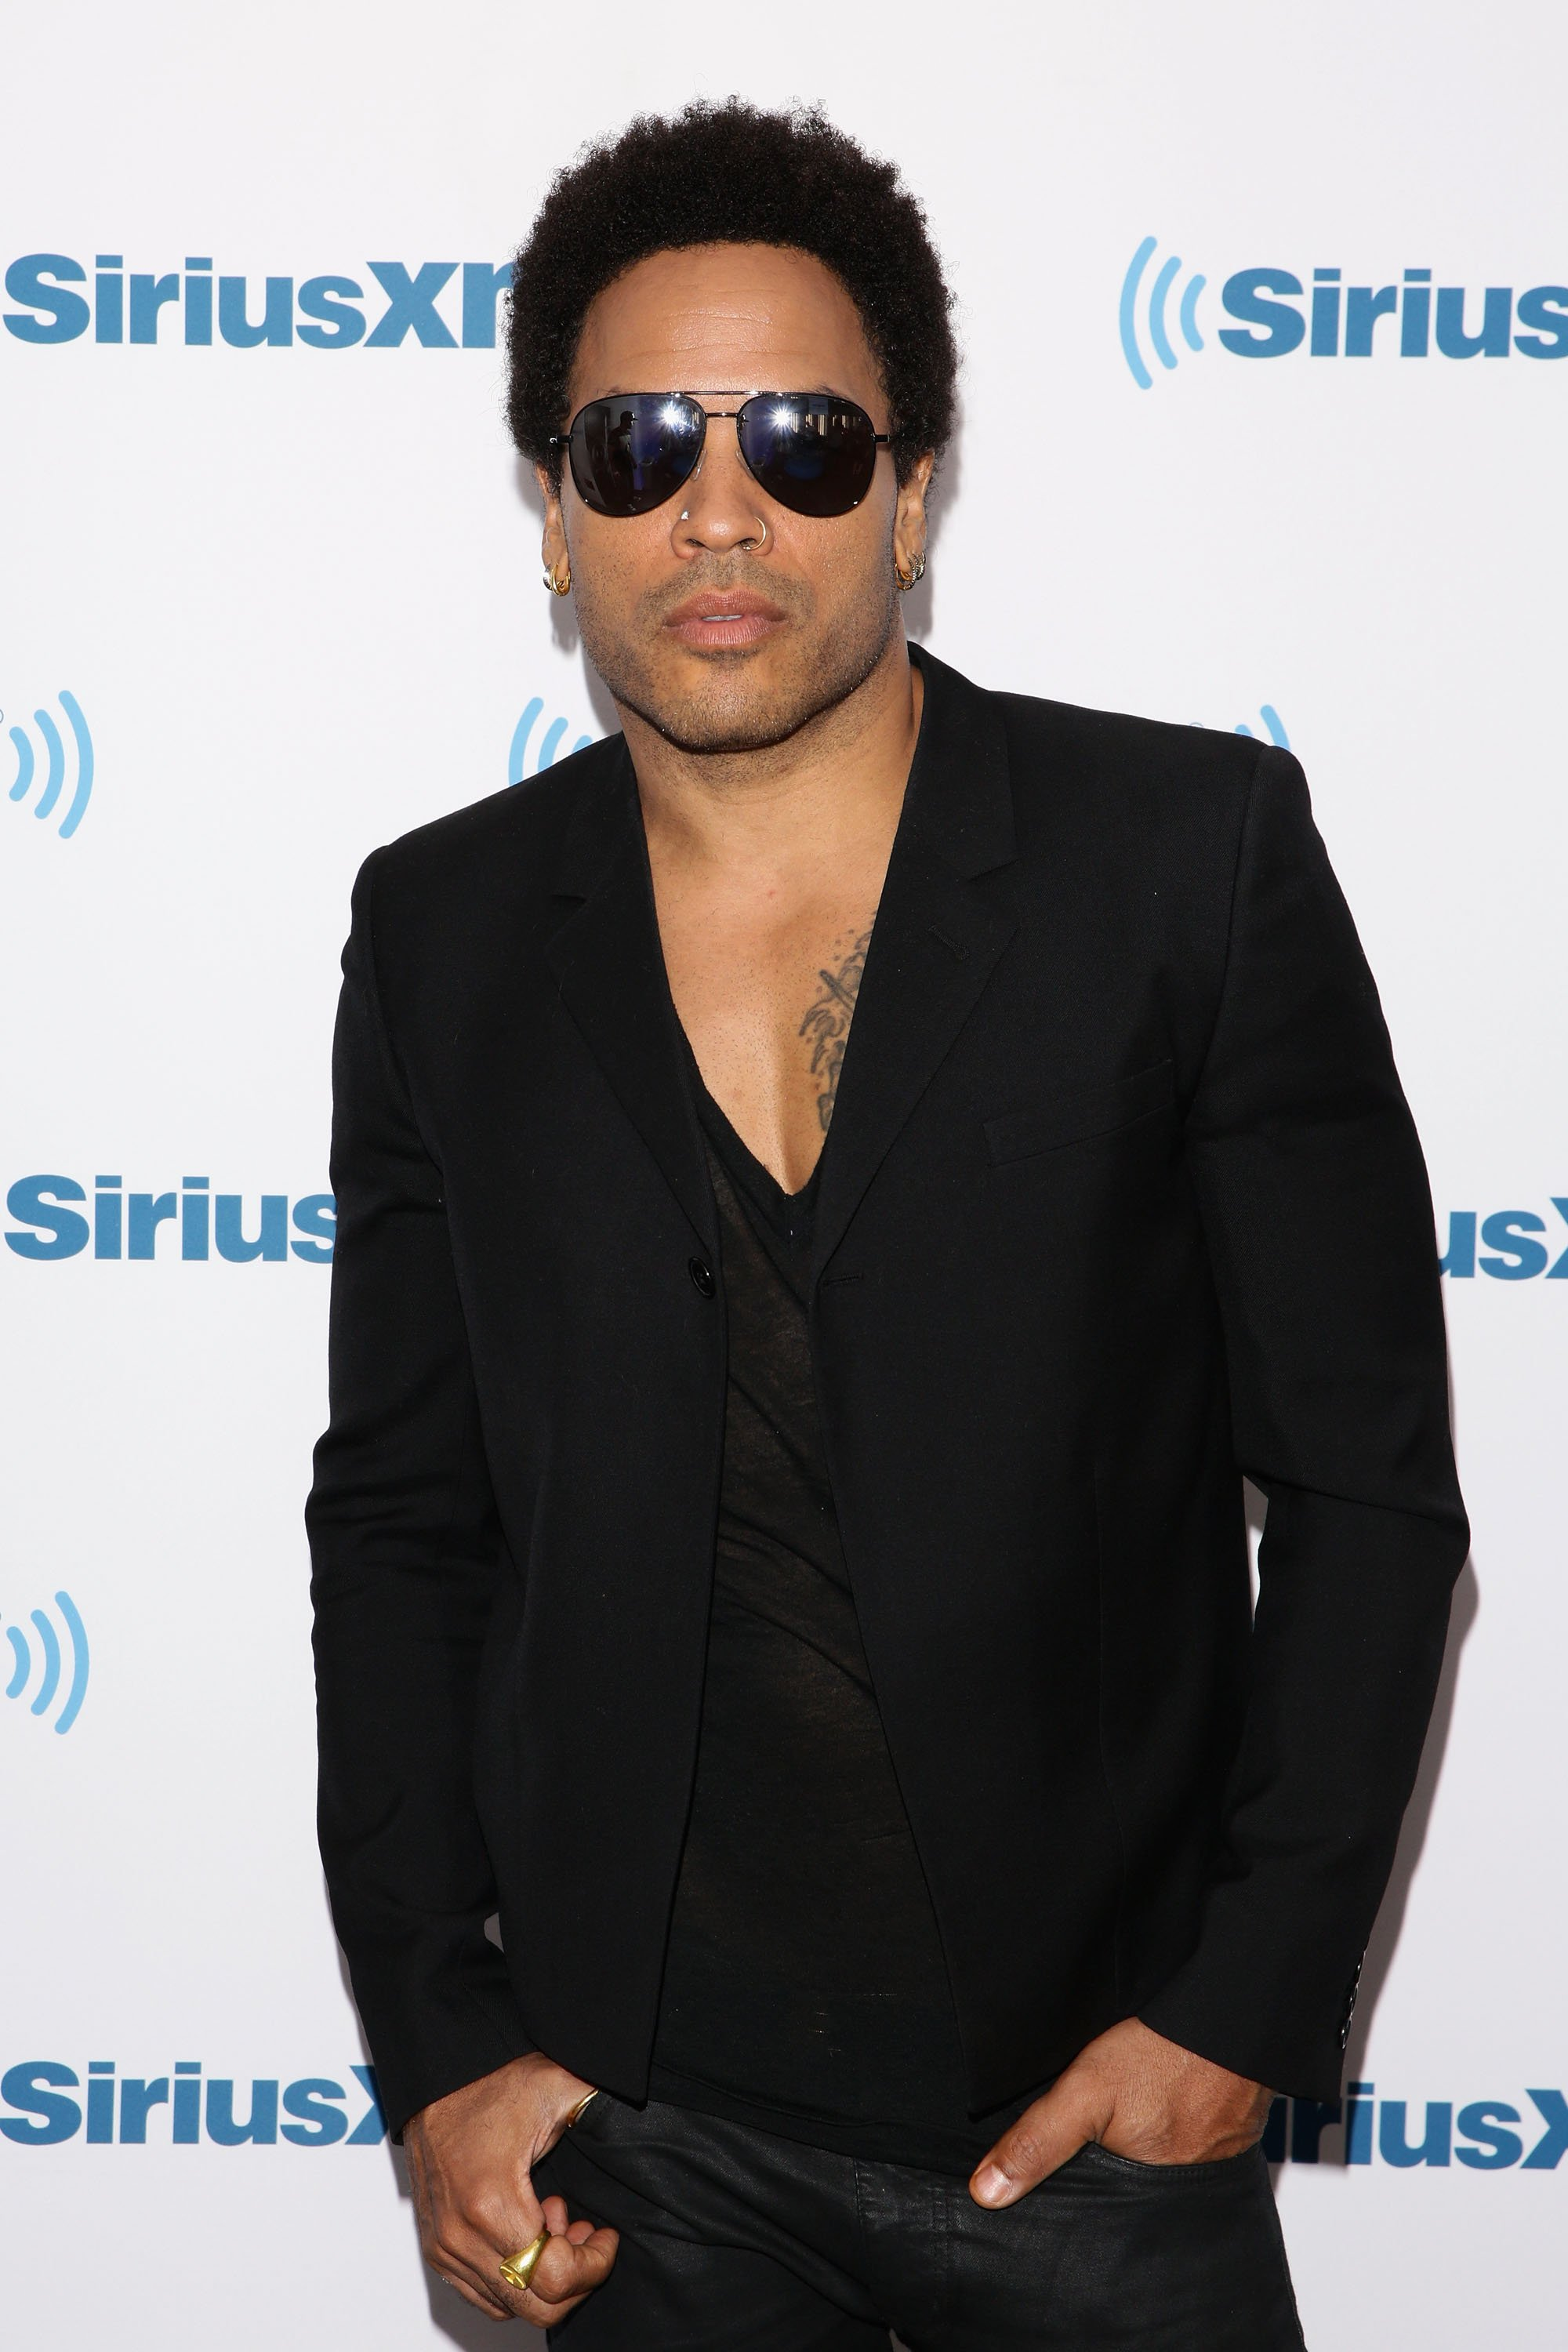 Lenny Kravitz at the SiriusXM Studios on June 16, 2014 in New York City. | Source: Getty Images